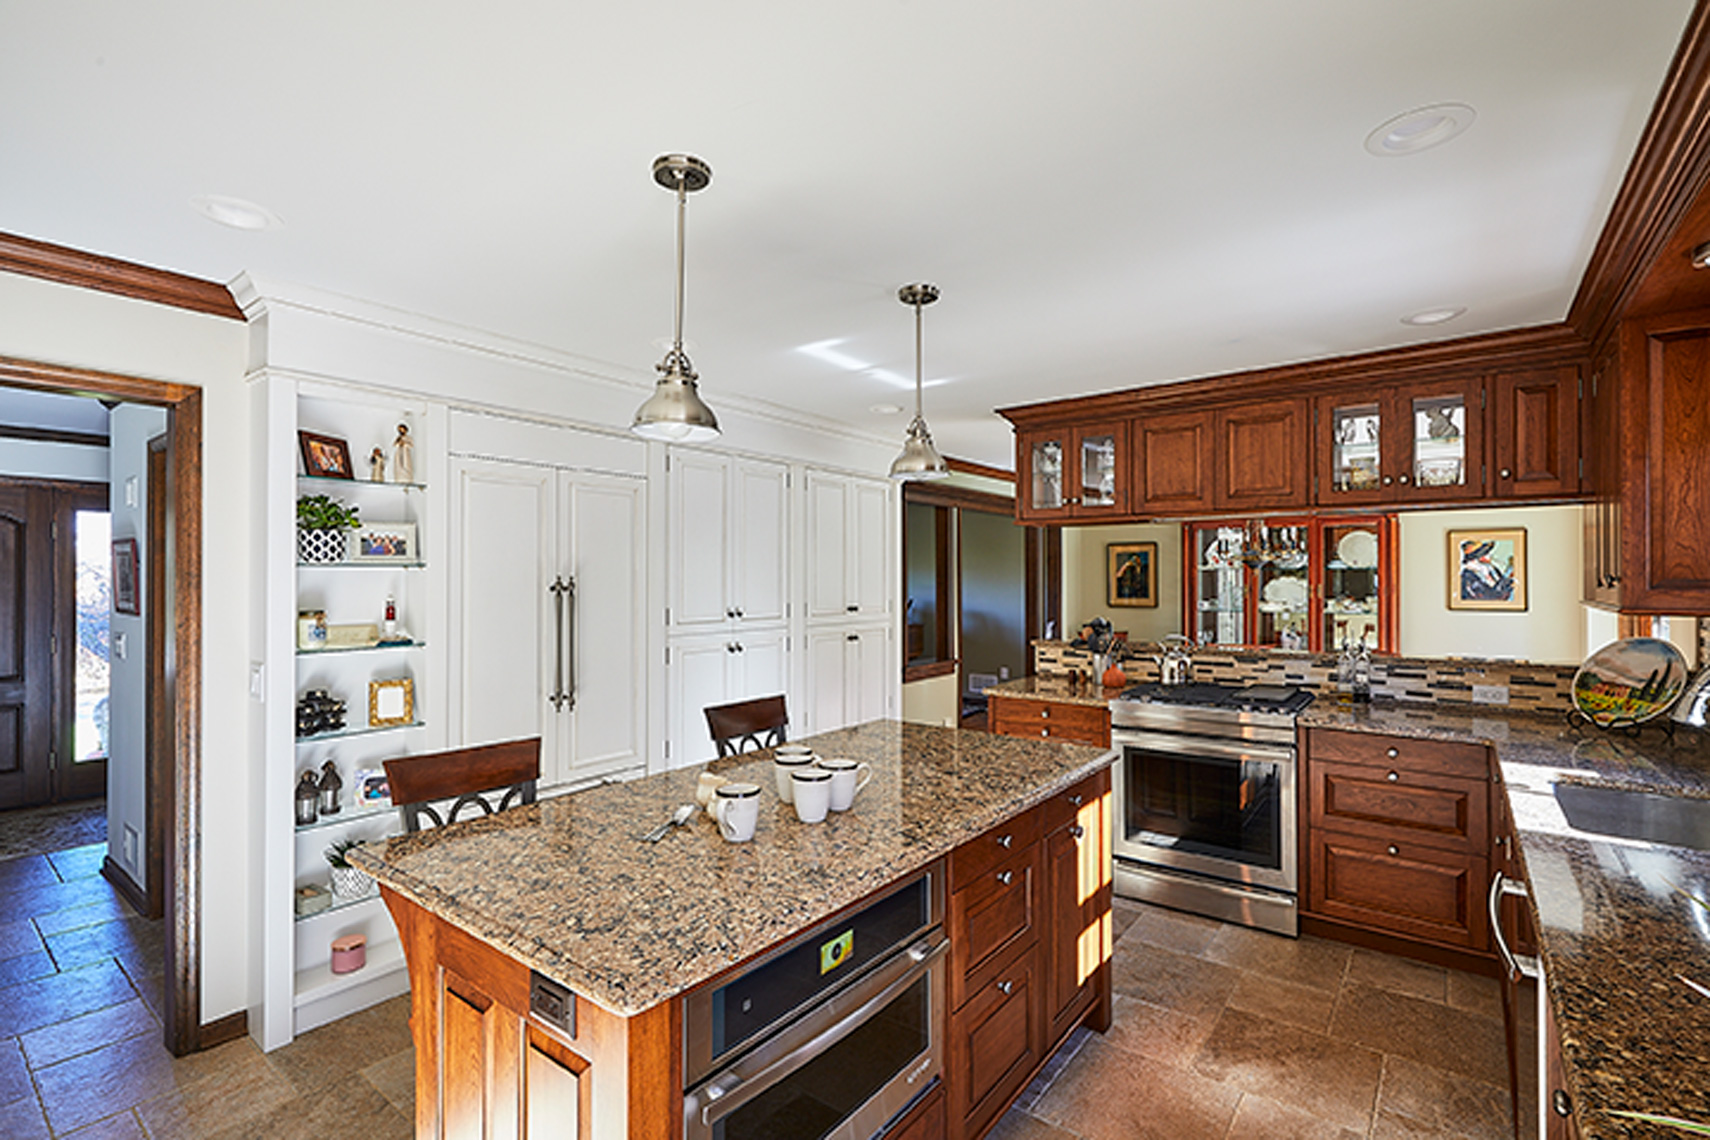 custom kitchen remodels bucks county PA - TraditionalCherryKitchen2